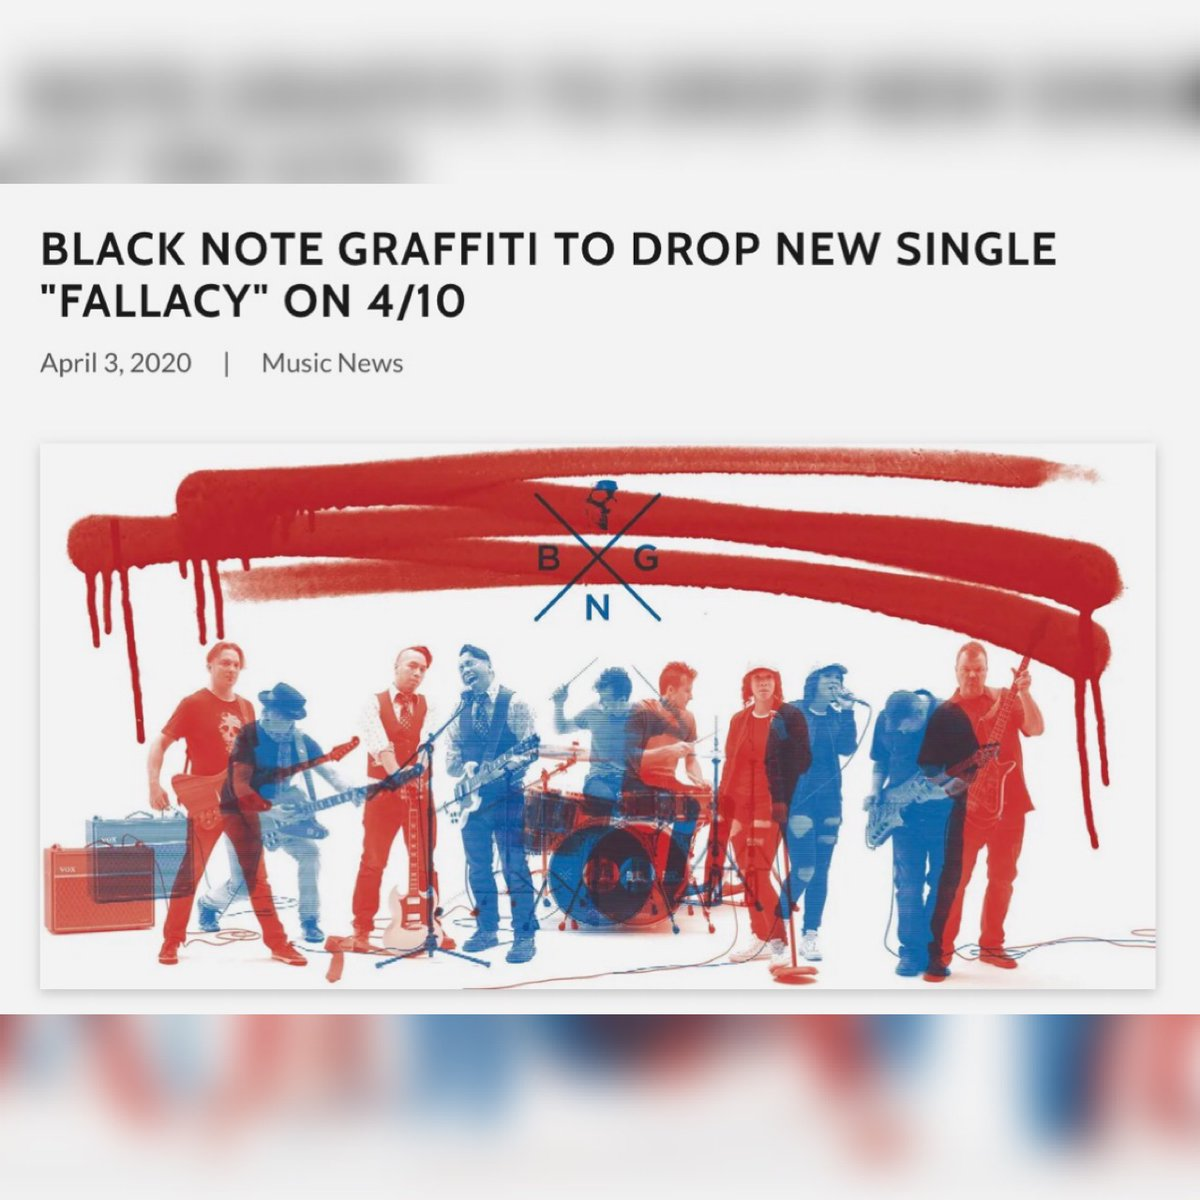 """Shoutout To @ImMusicMag For Their """"FALLACY"""" Article ~Check Out The LINK Below: https://im-musicmagazine.com/f/black-note-graffiti-to-drop-new-single-fallacy-on-410… @ChuckAlkazian @unleashedmusic @GinaJuliano @Pearlcrazian  . .  #music #rock  #rockmusic #musician #singer  #newmusic #Blacknotegraffiti #stream #spotify #applemusic #SoundCloudpic.twitter.com/y4zJC6r6LK"""